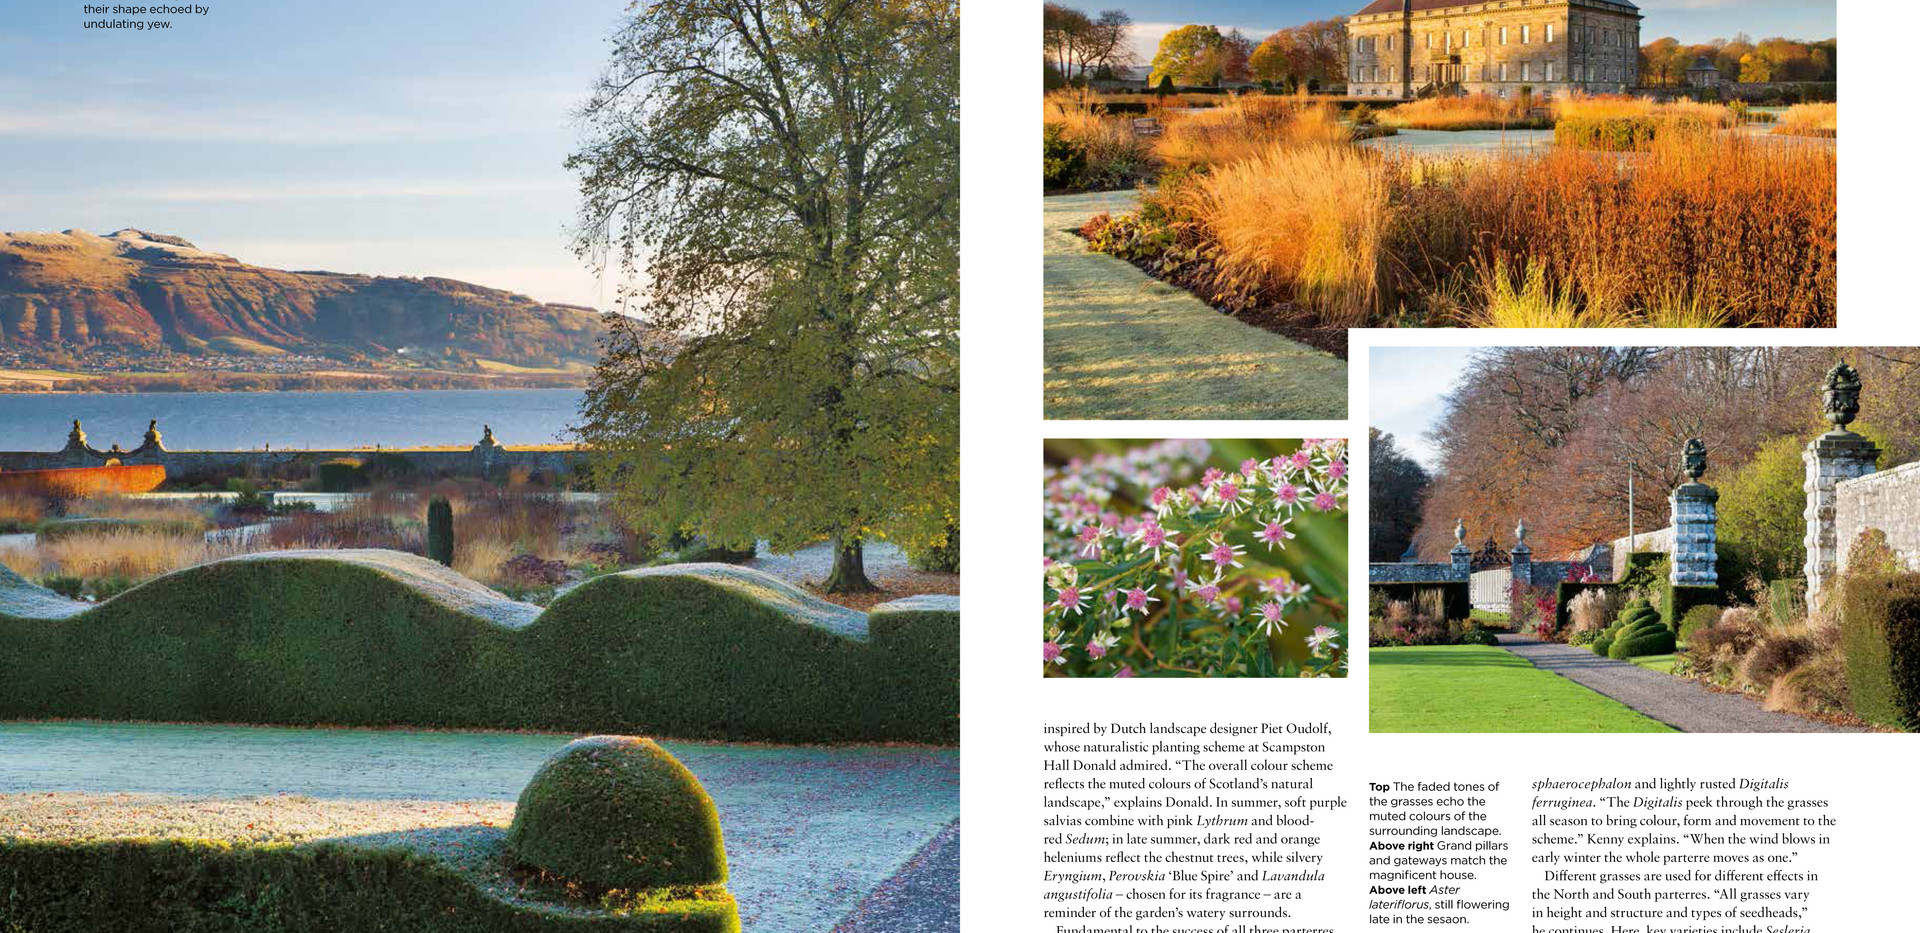 Kinross House Garden, designed by Alistair Baldwin, The English Garden Magazine, Page 3